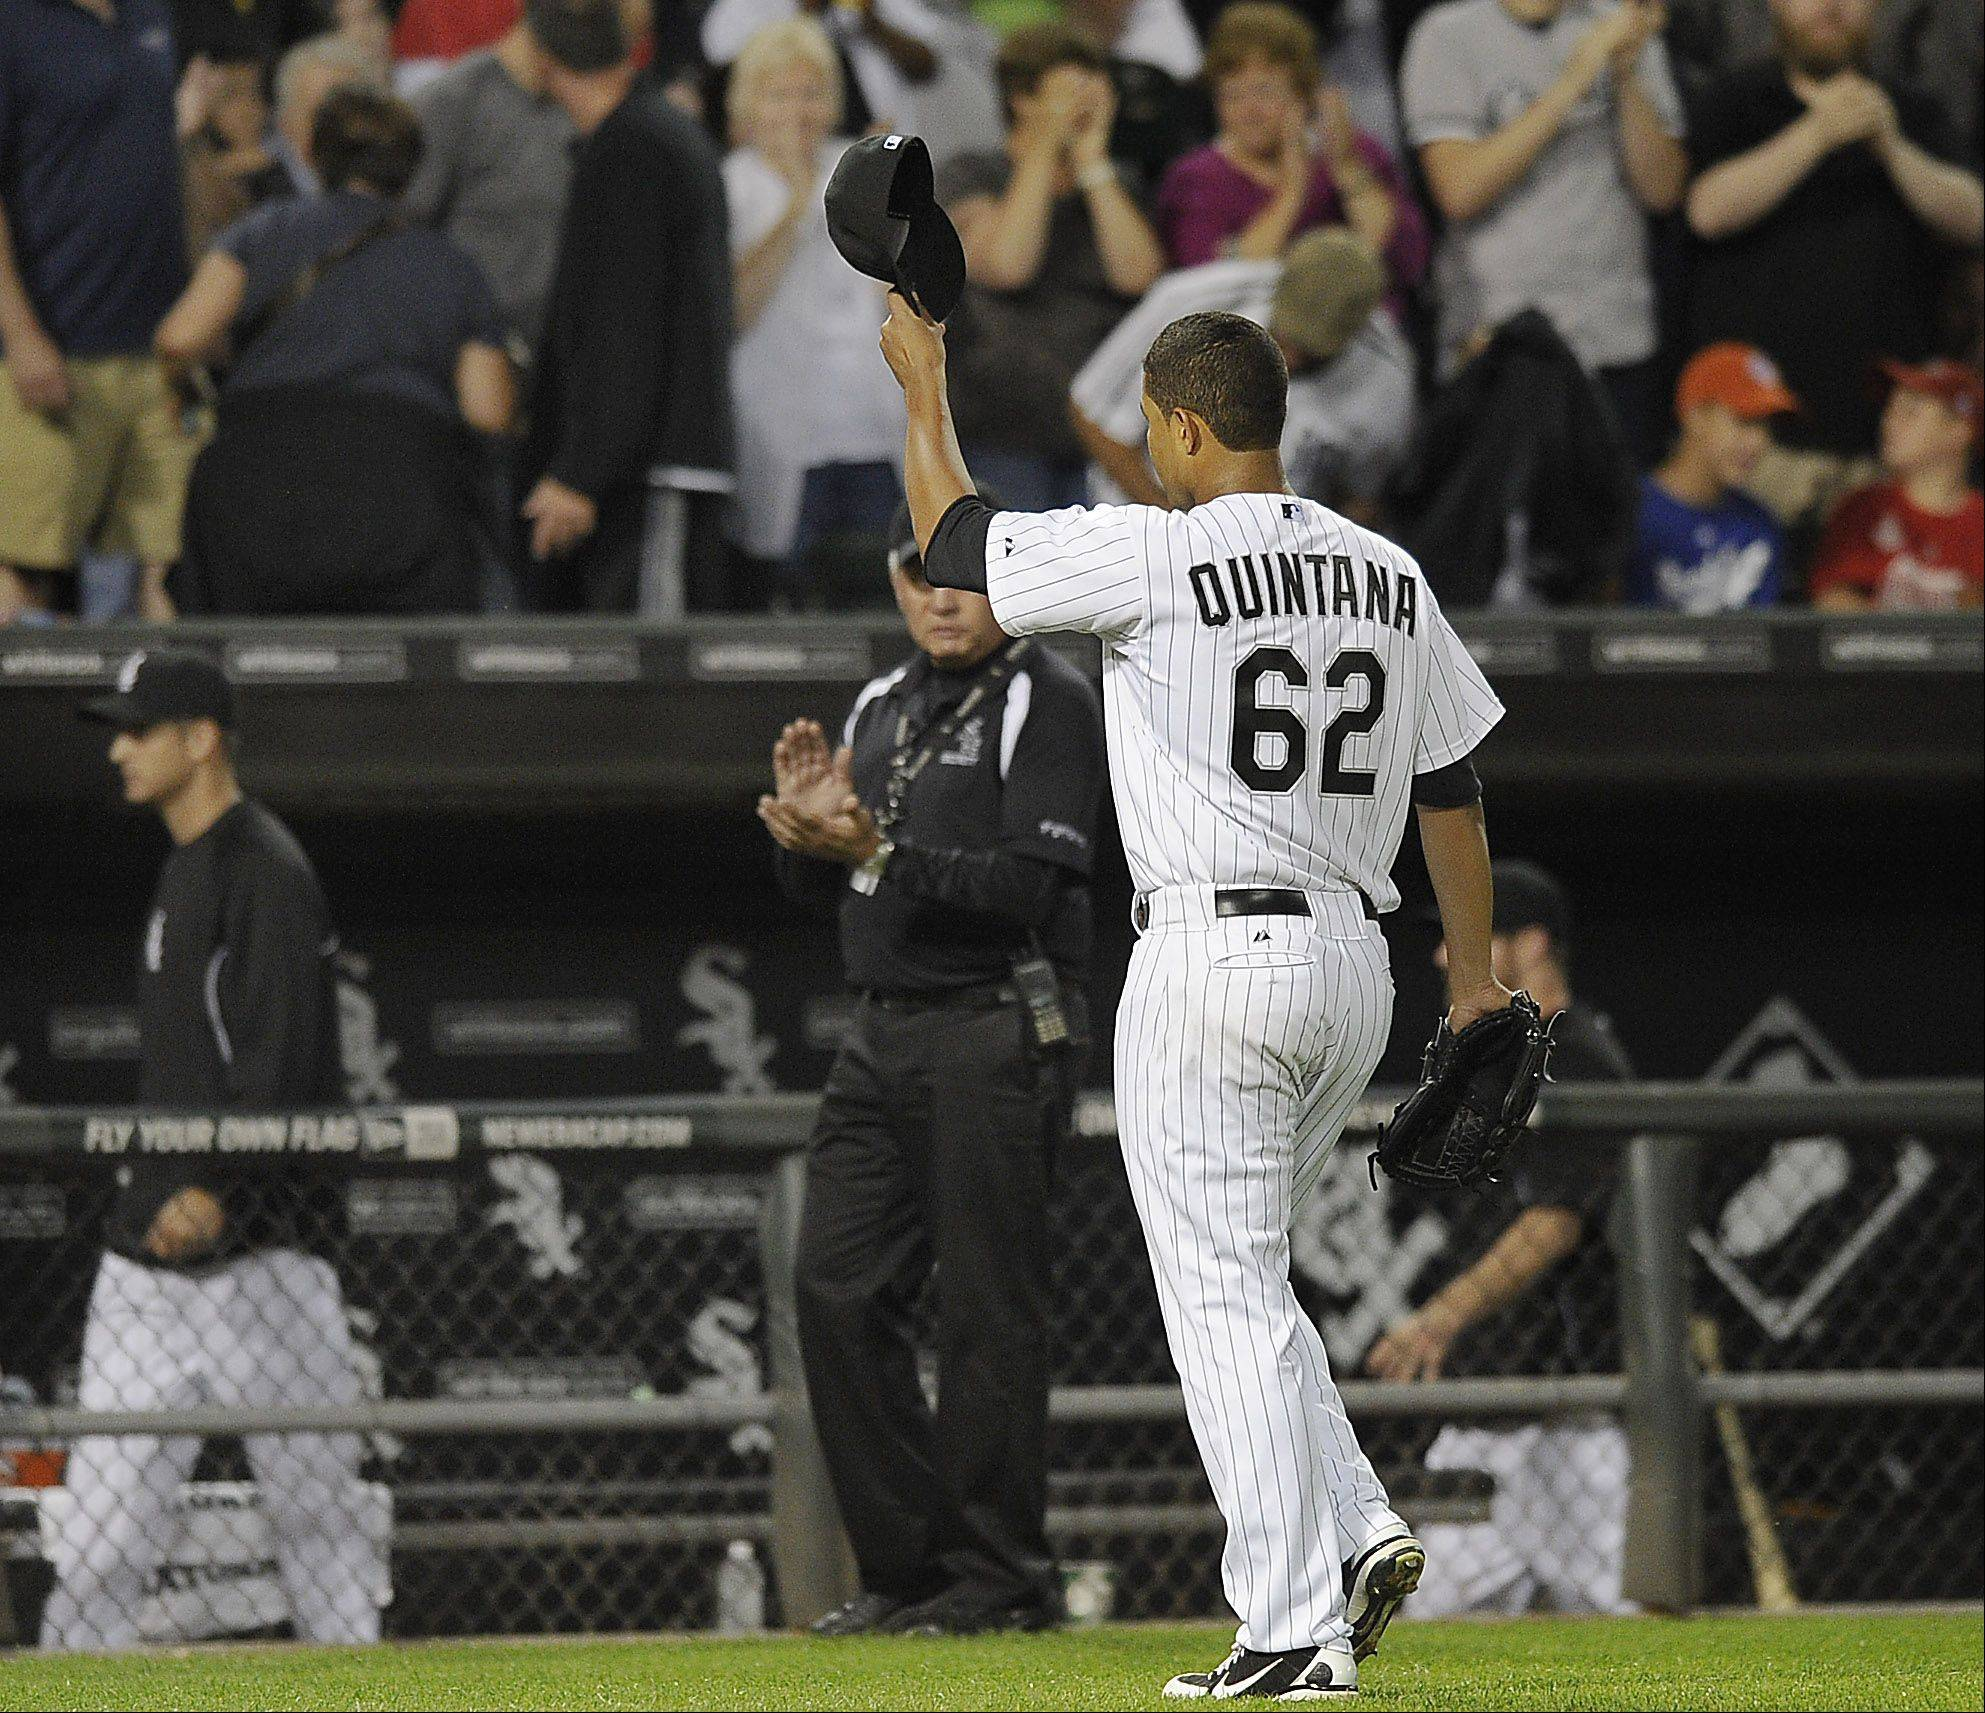 White Sox's Jose Quintana, pitcher tips his hat to the audience at Cellular Field in Chicago on Monday.